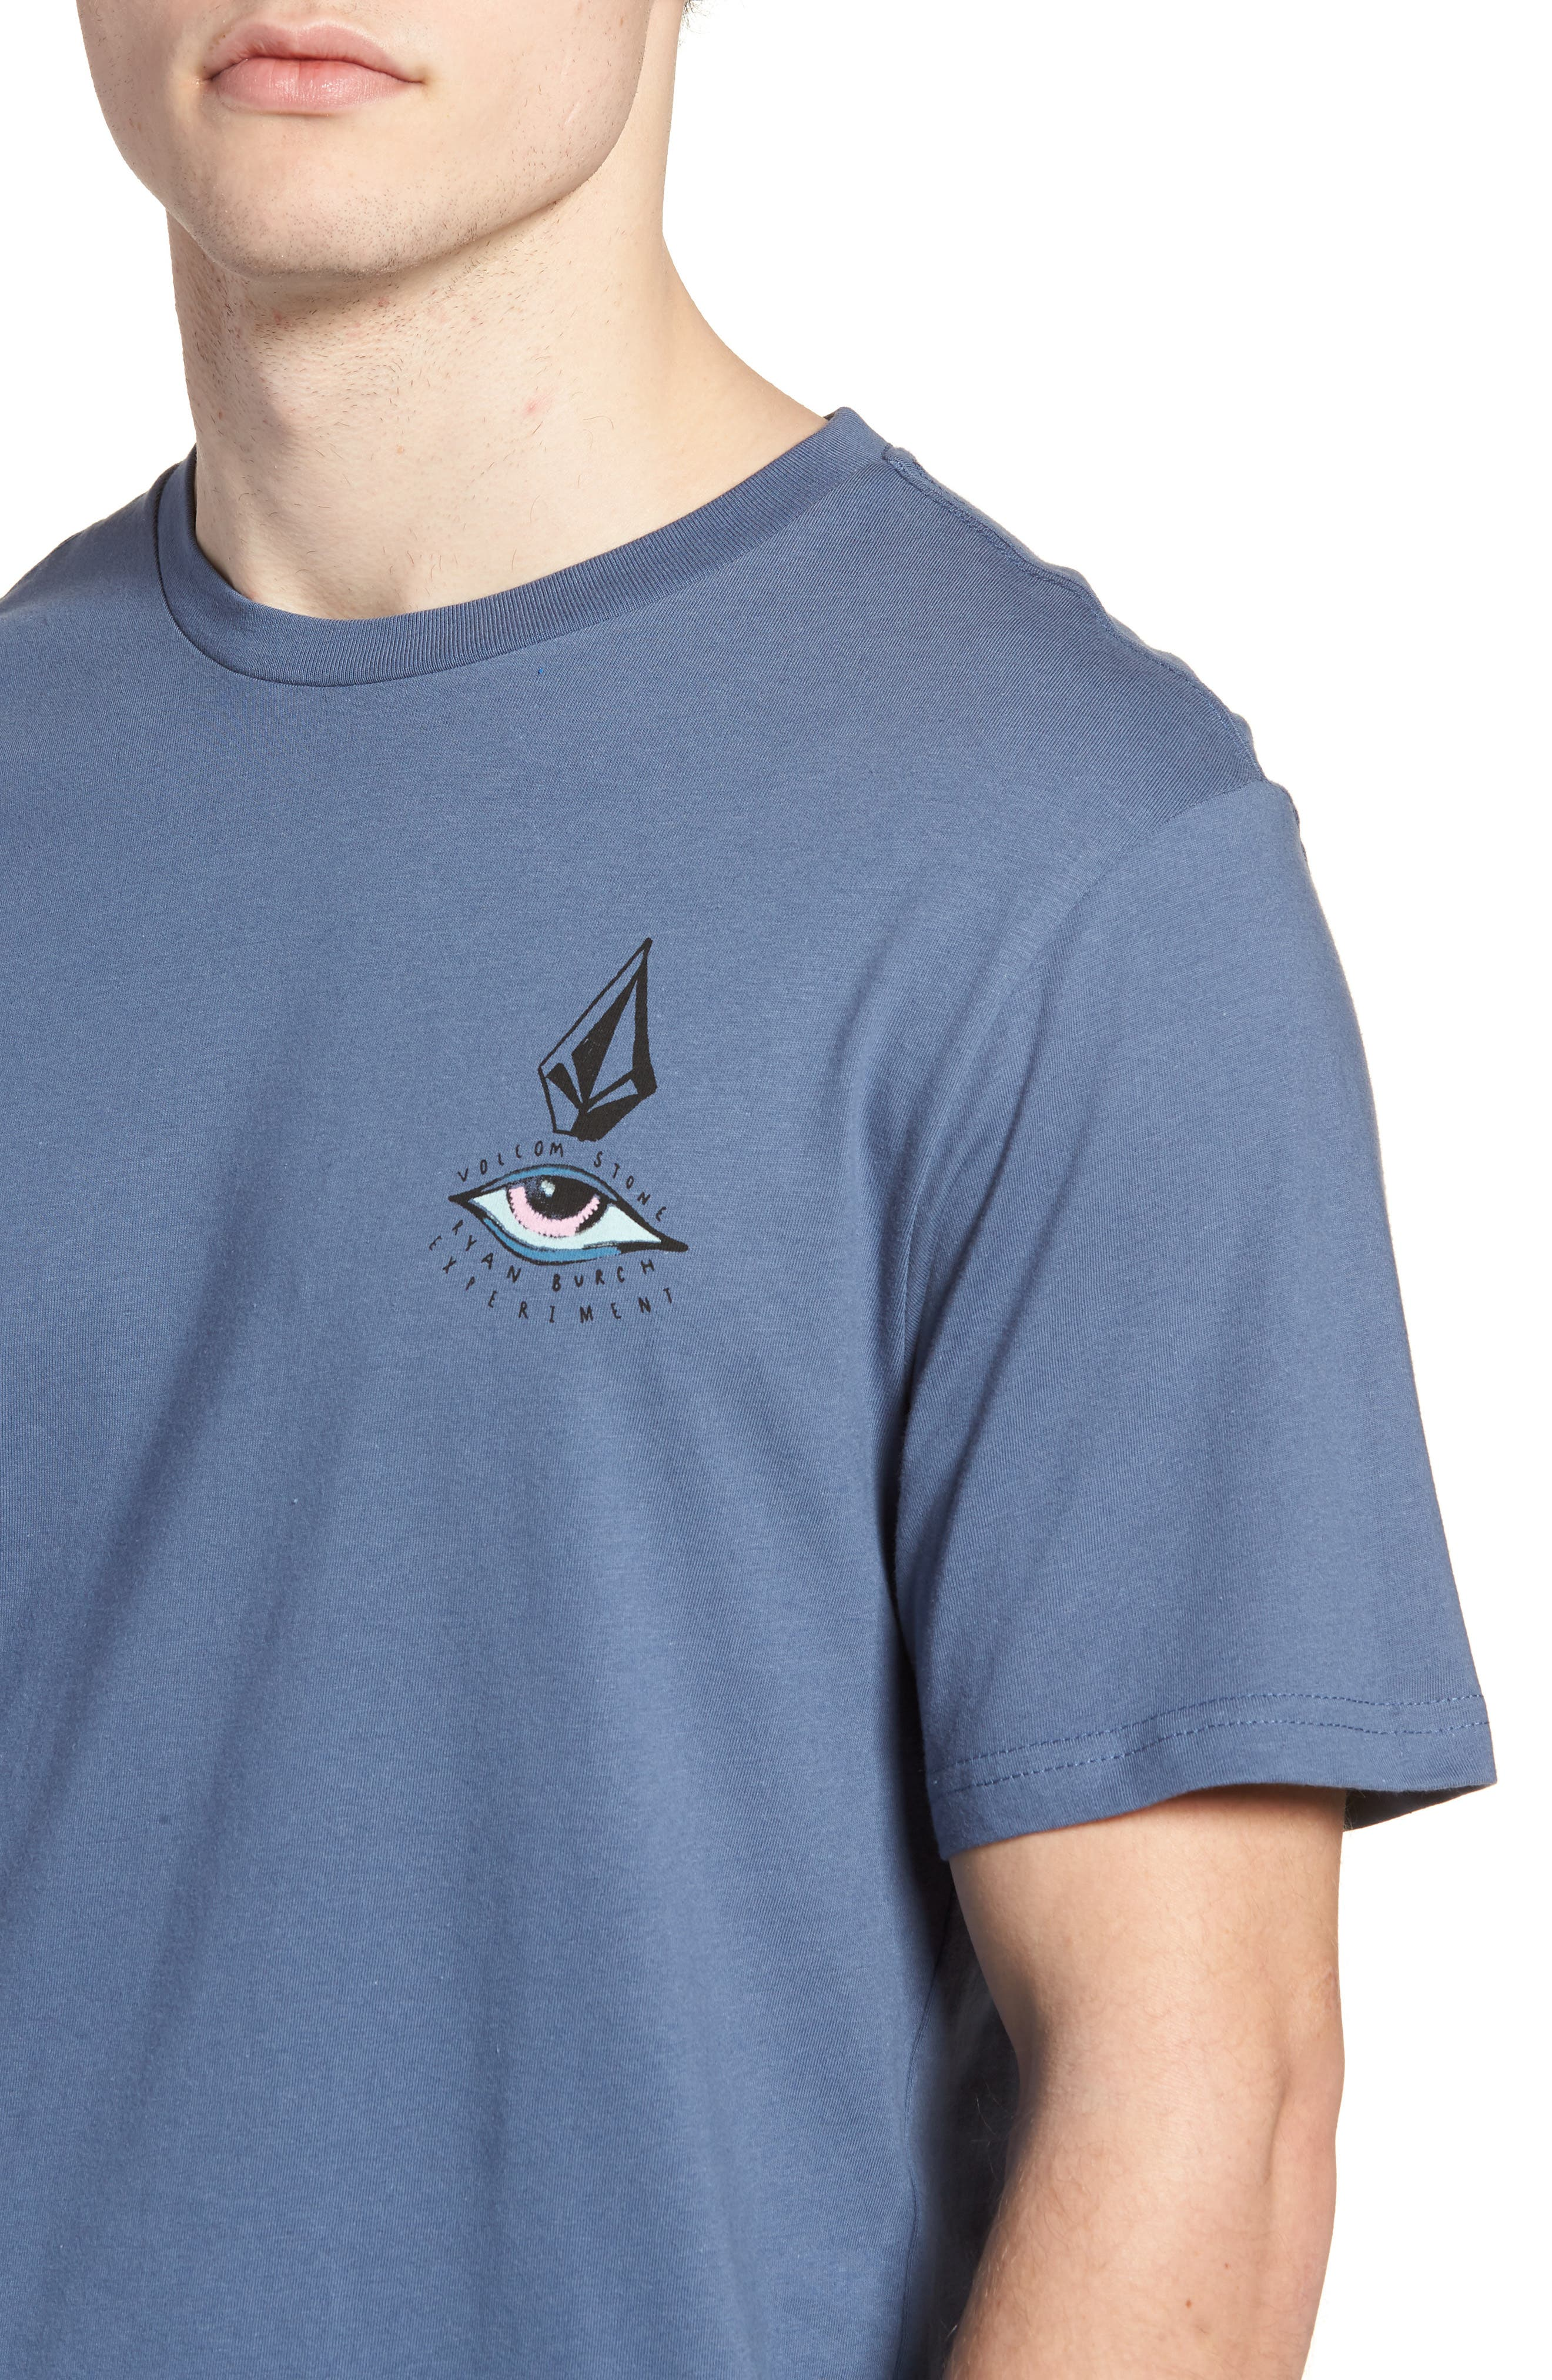 Burch Eye Graphic T-Shirt,                             Alternate thumbnail 4, color,                             463